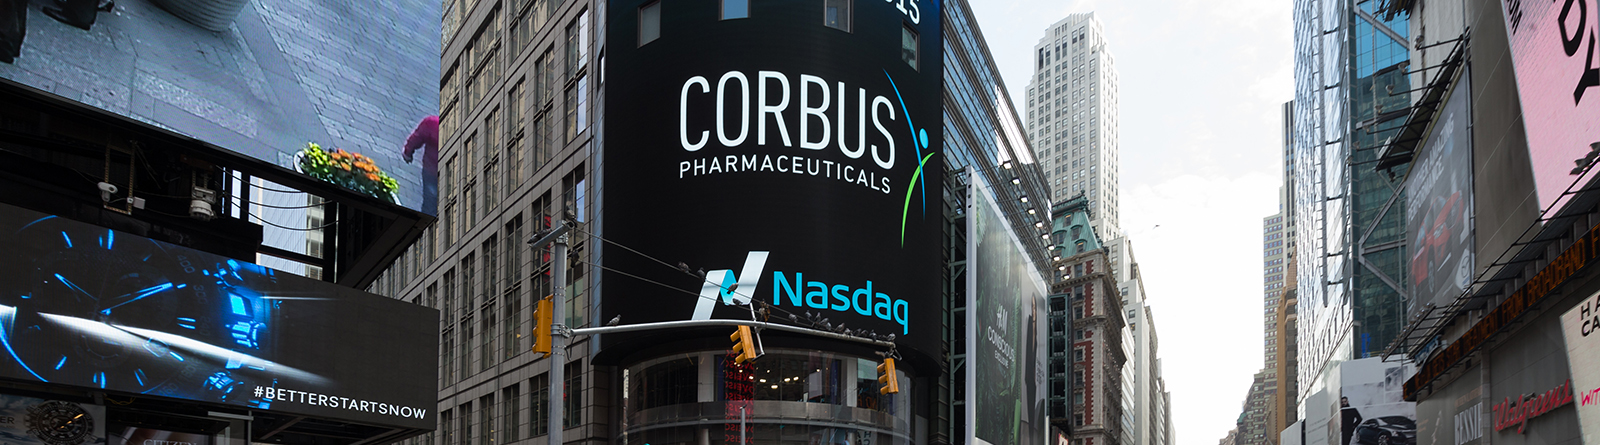 Corbus Pharmaceuticals Reports 2019 First Quarter Financial Results and Provides Clinical Updates Banner